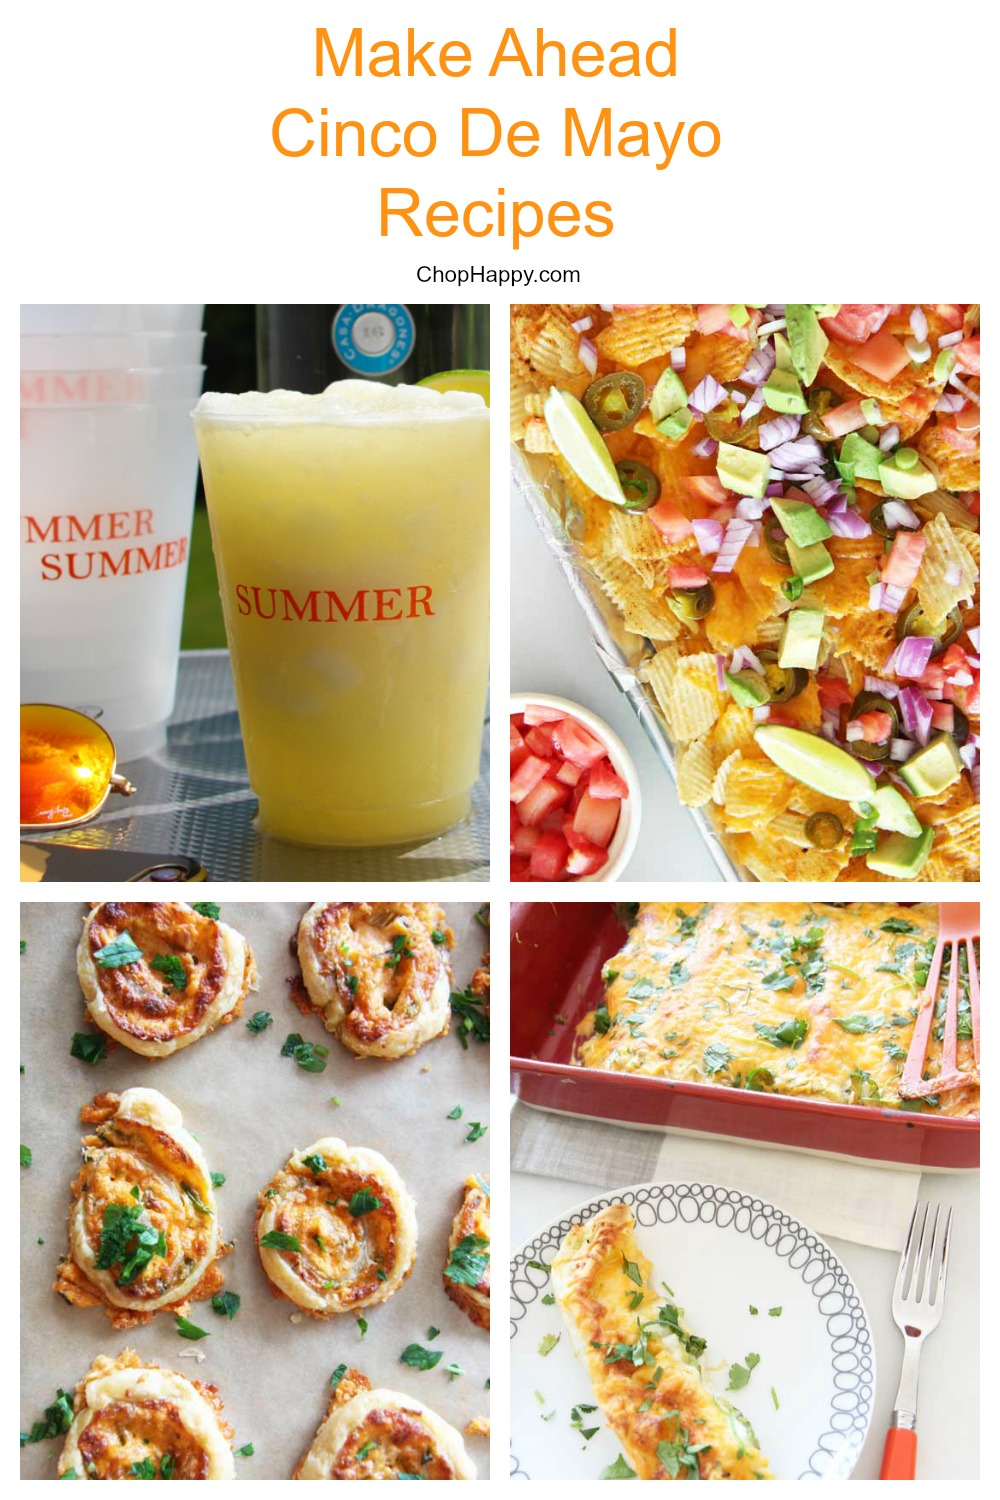 How To Throw A Make Ahead Cinco De Mayo Party Recipes. Grab your margarita, enchiladas, and party. Happy celebrating life and friends. www.ChopHappy.com #CincoDeMayo #partyrecipes